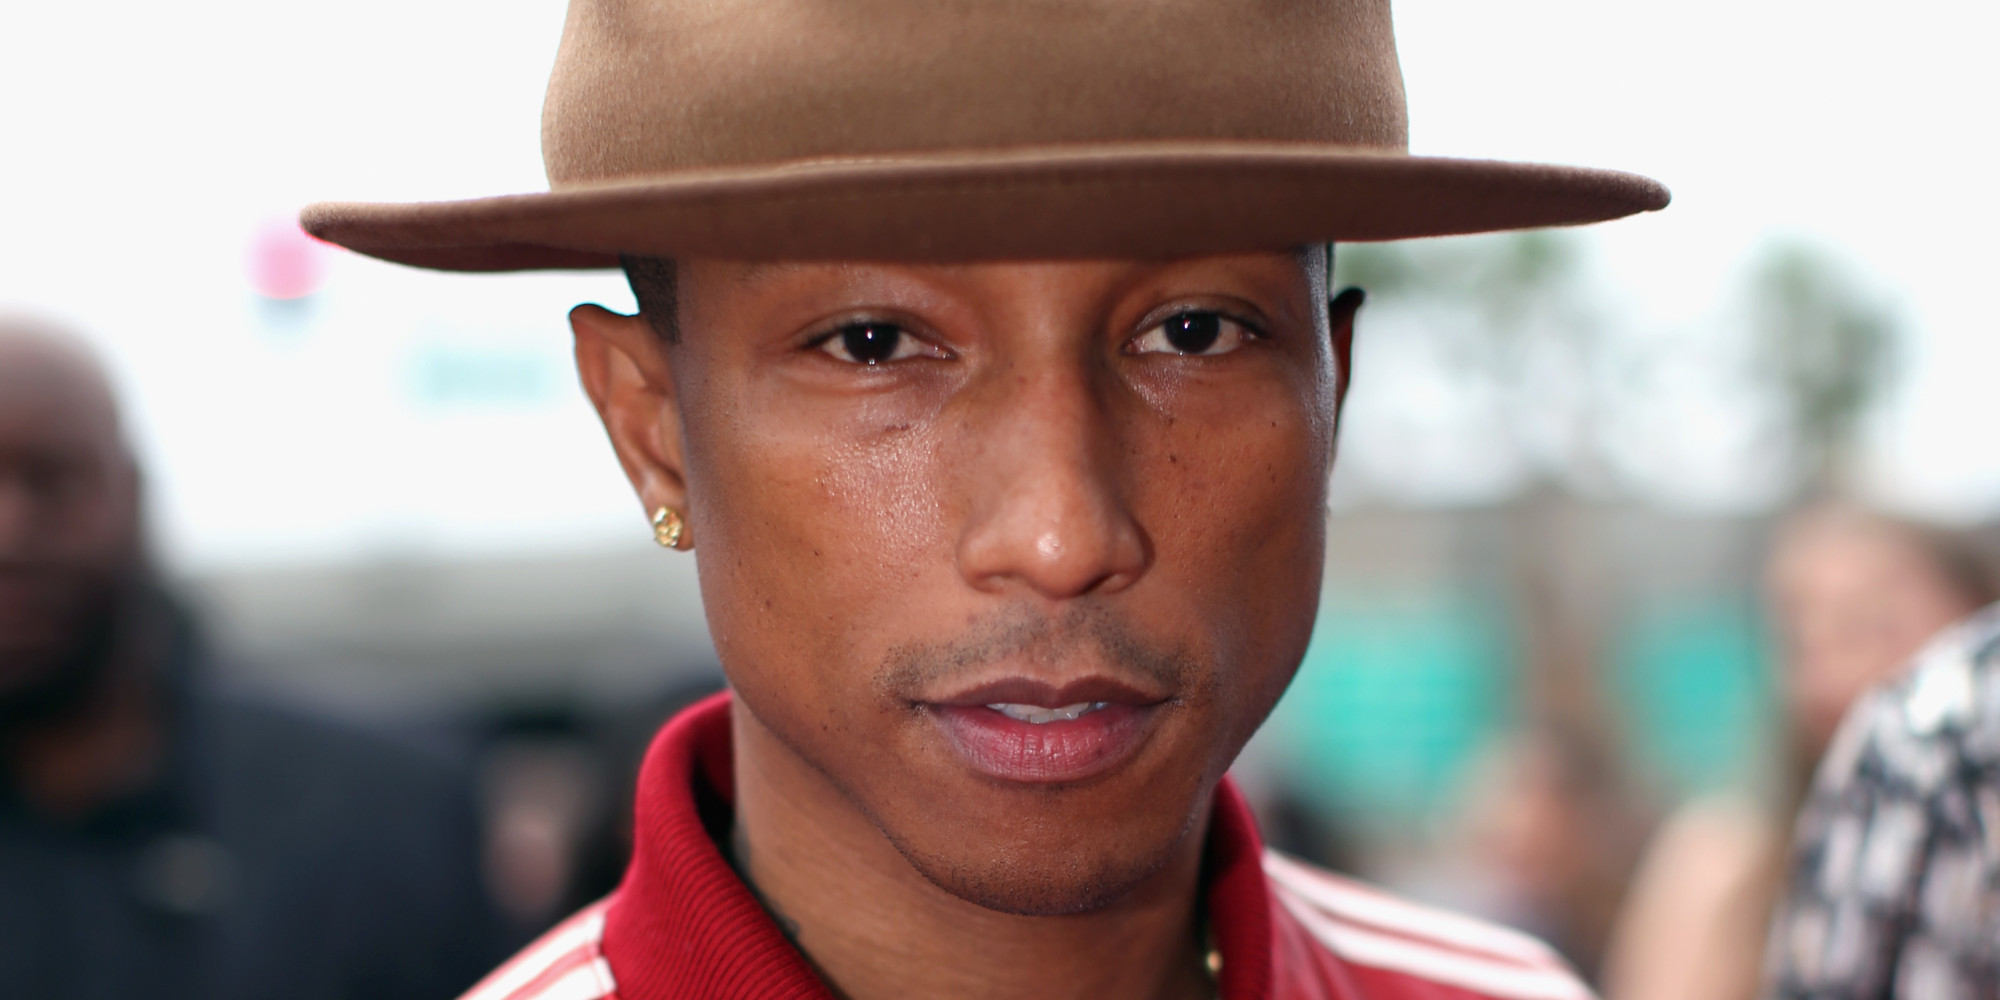 pharrell williams hd wallpapers